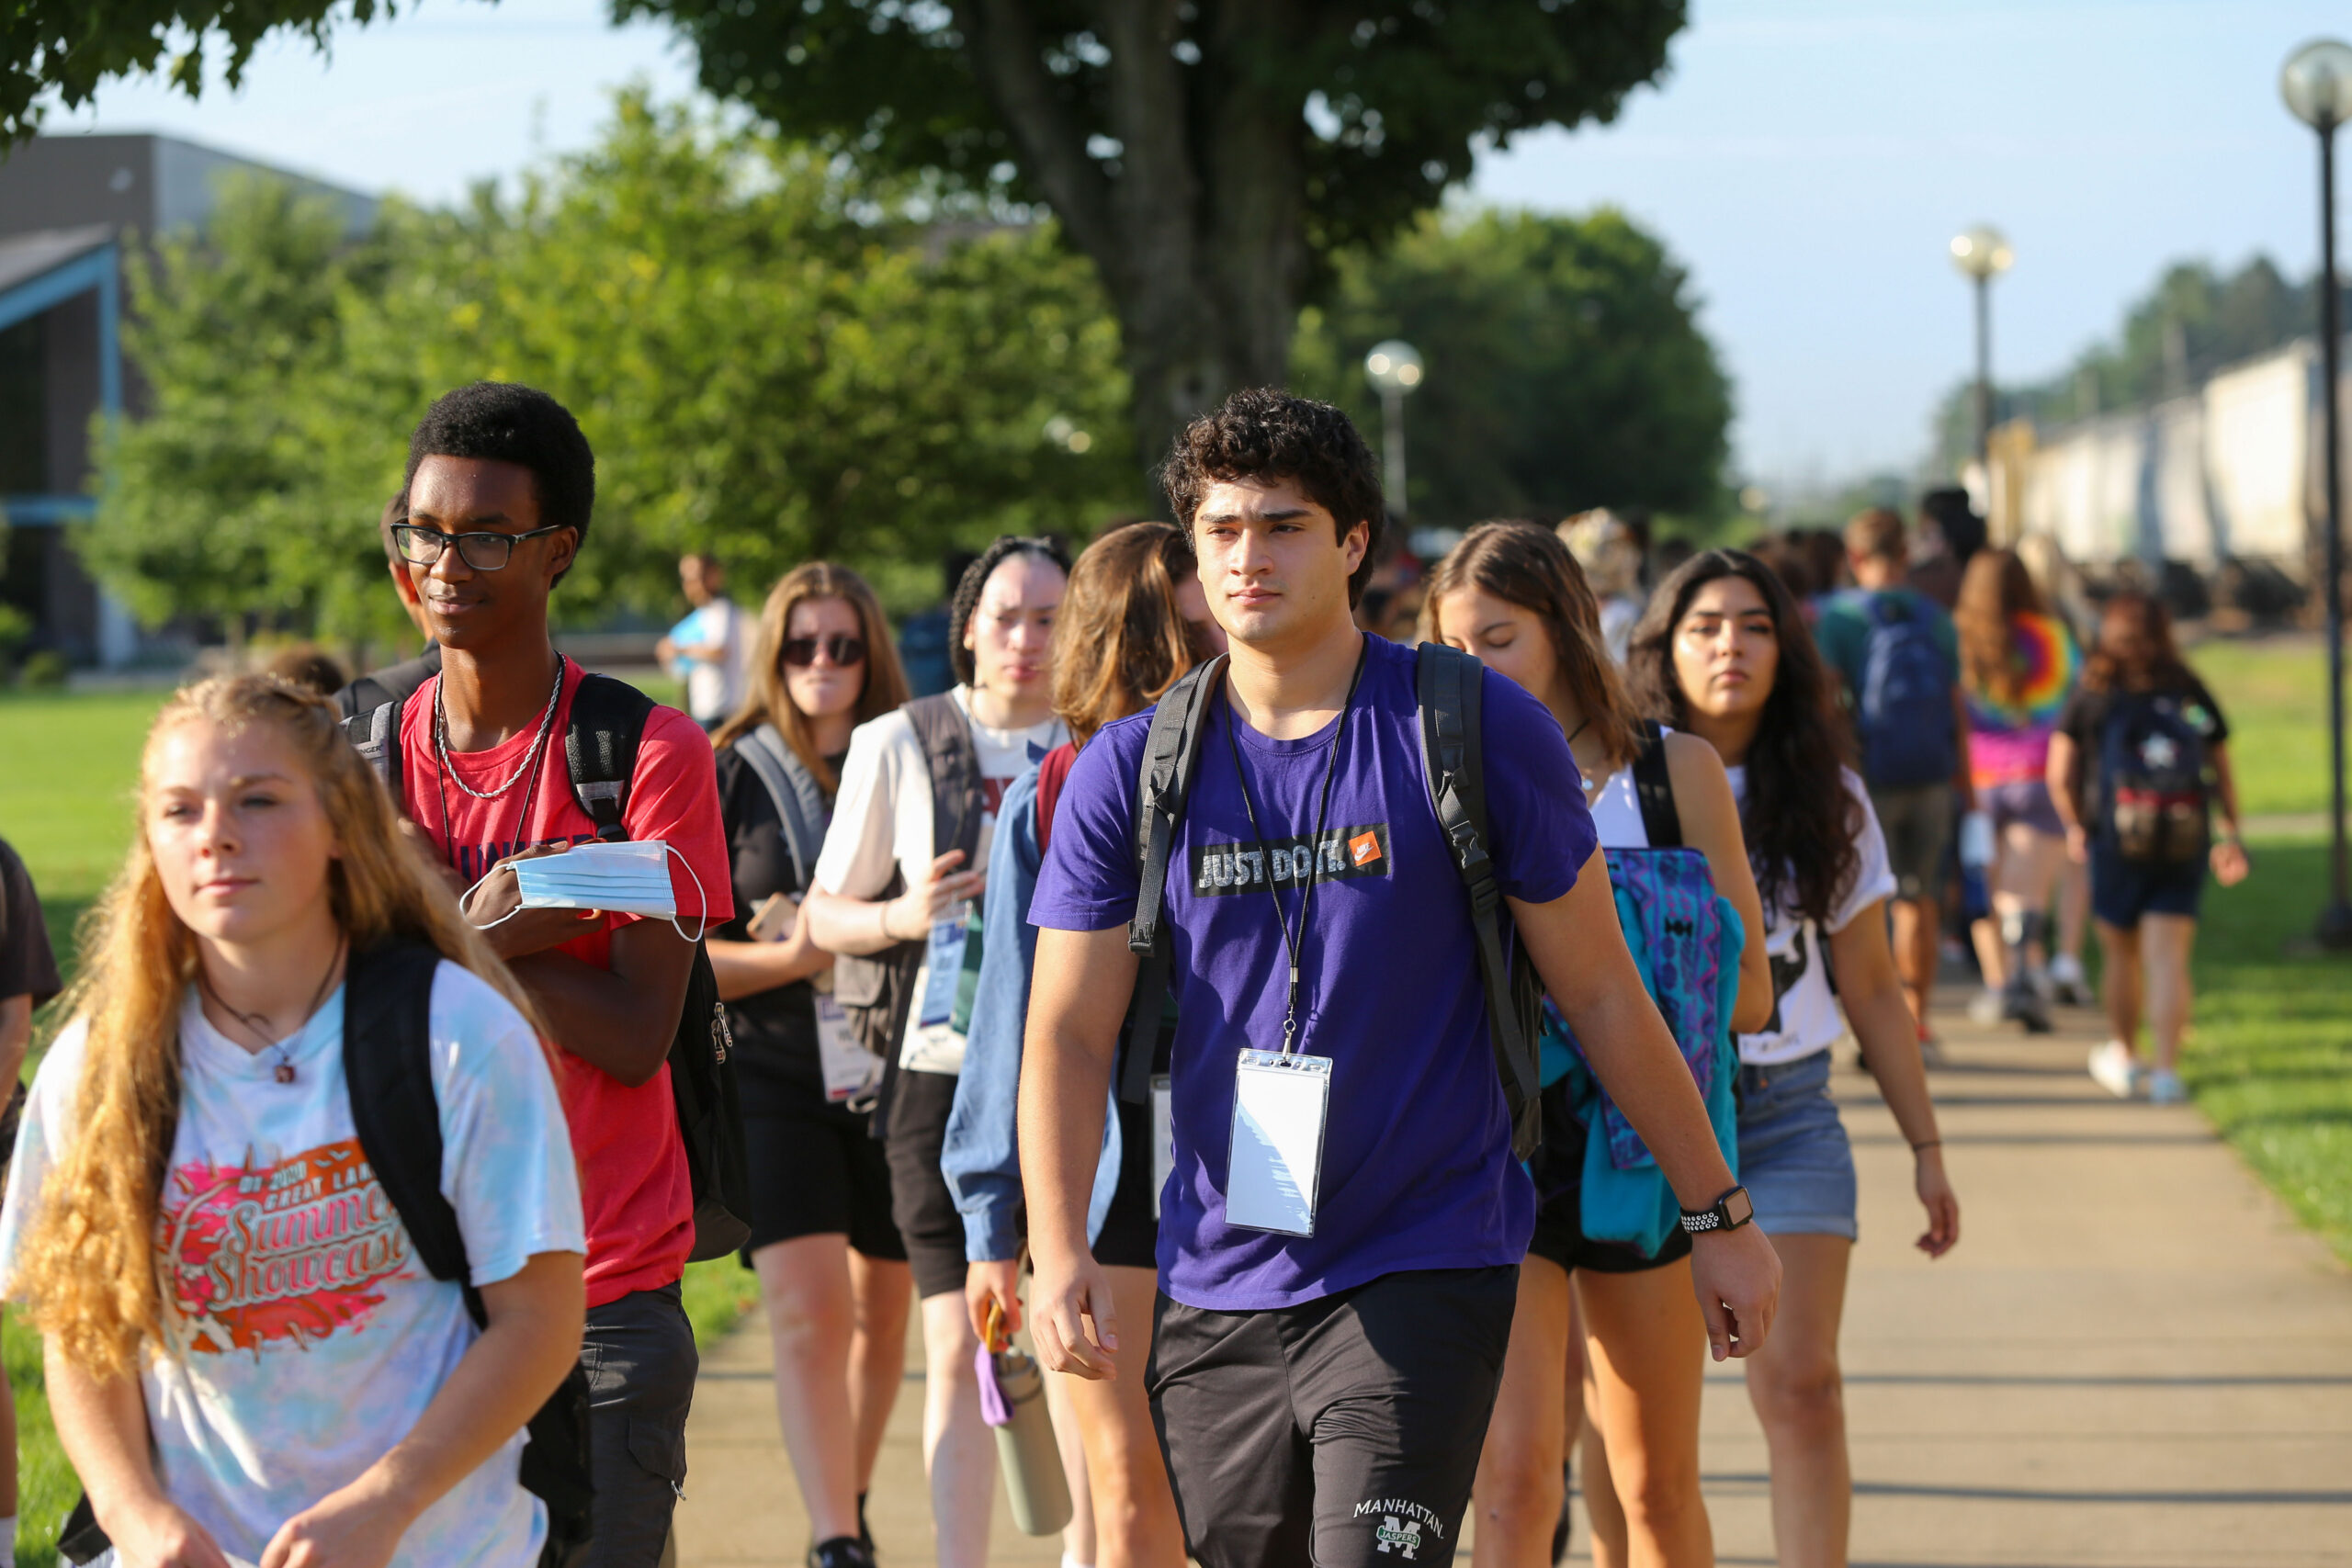 First years walking campus during orientation